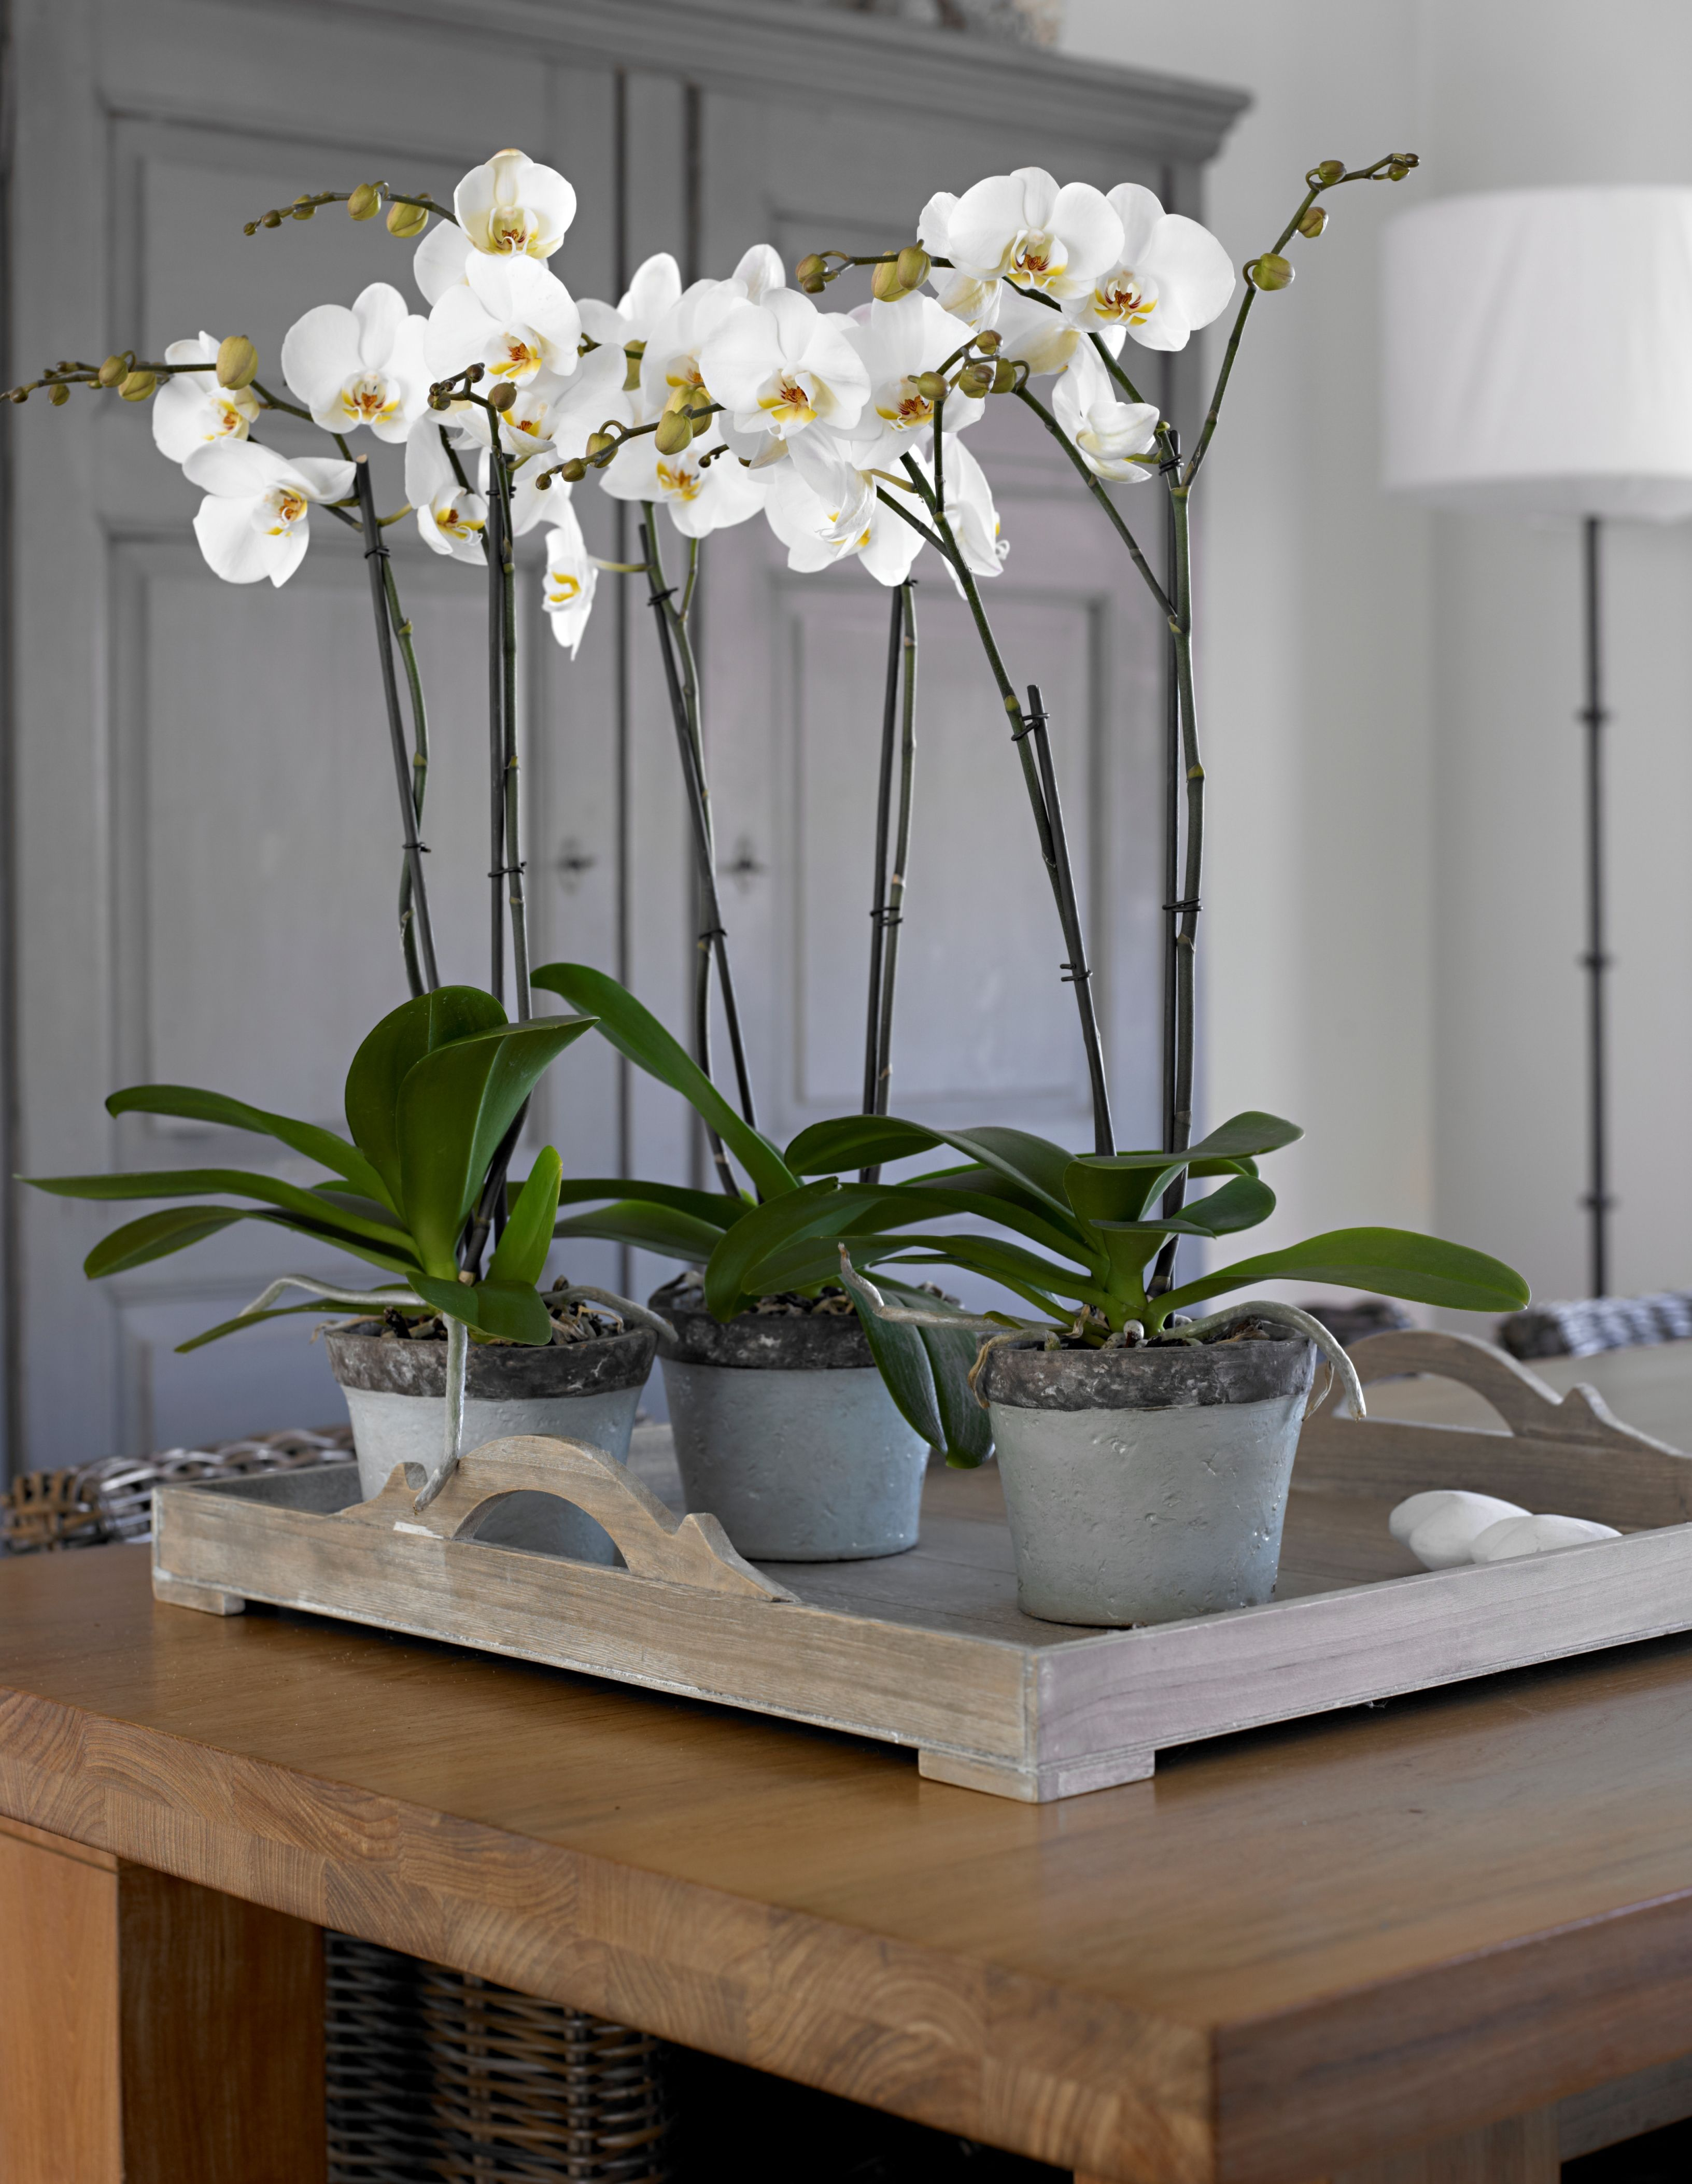 Lovely #orchids #Deco #Interior #Plants